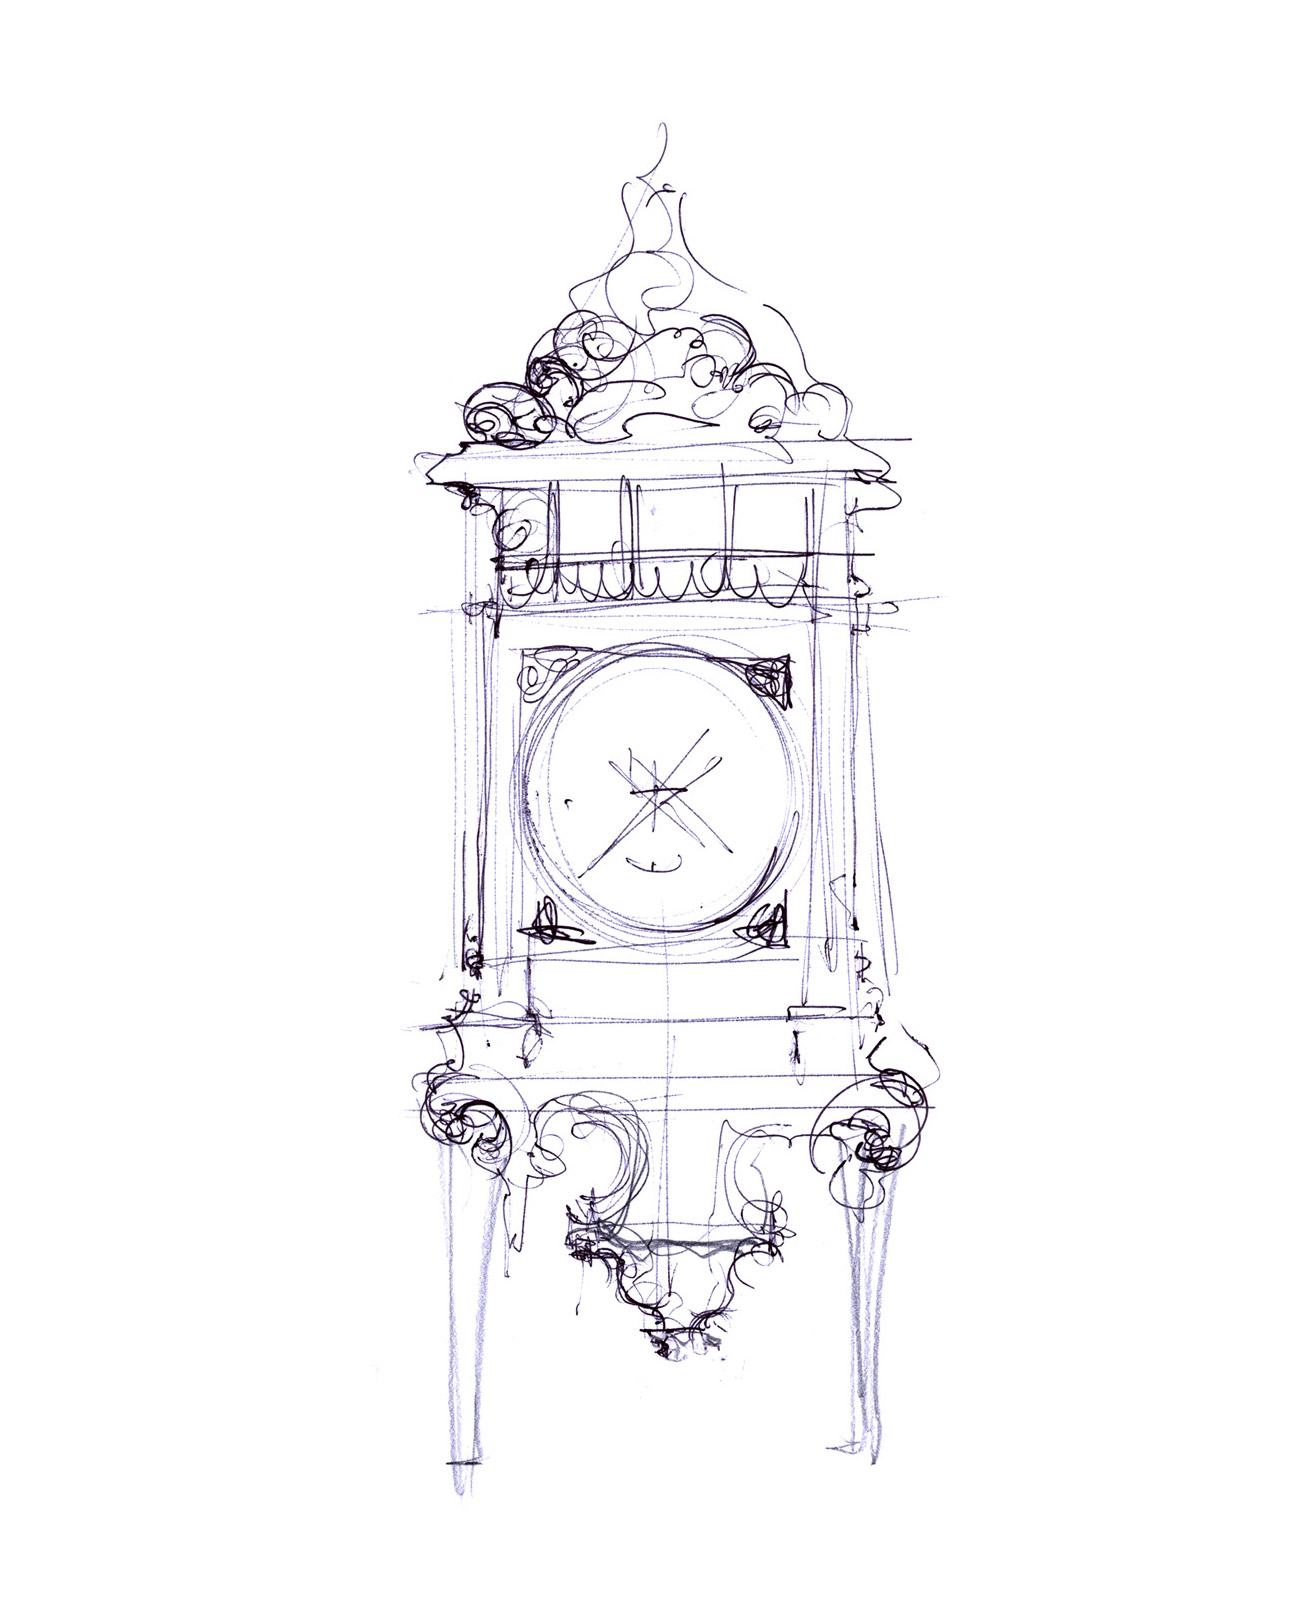 FIRST SKETCH OF THE CLOCKS SERIES, 2012